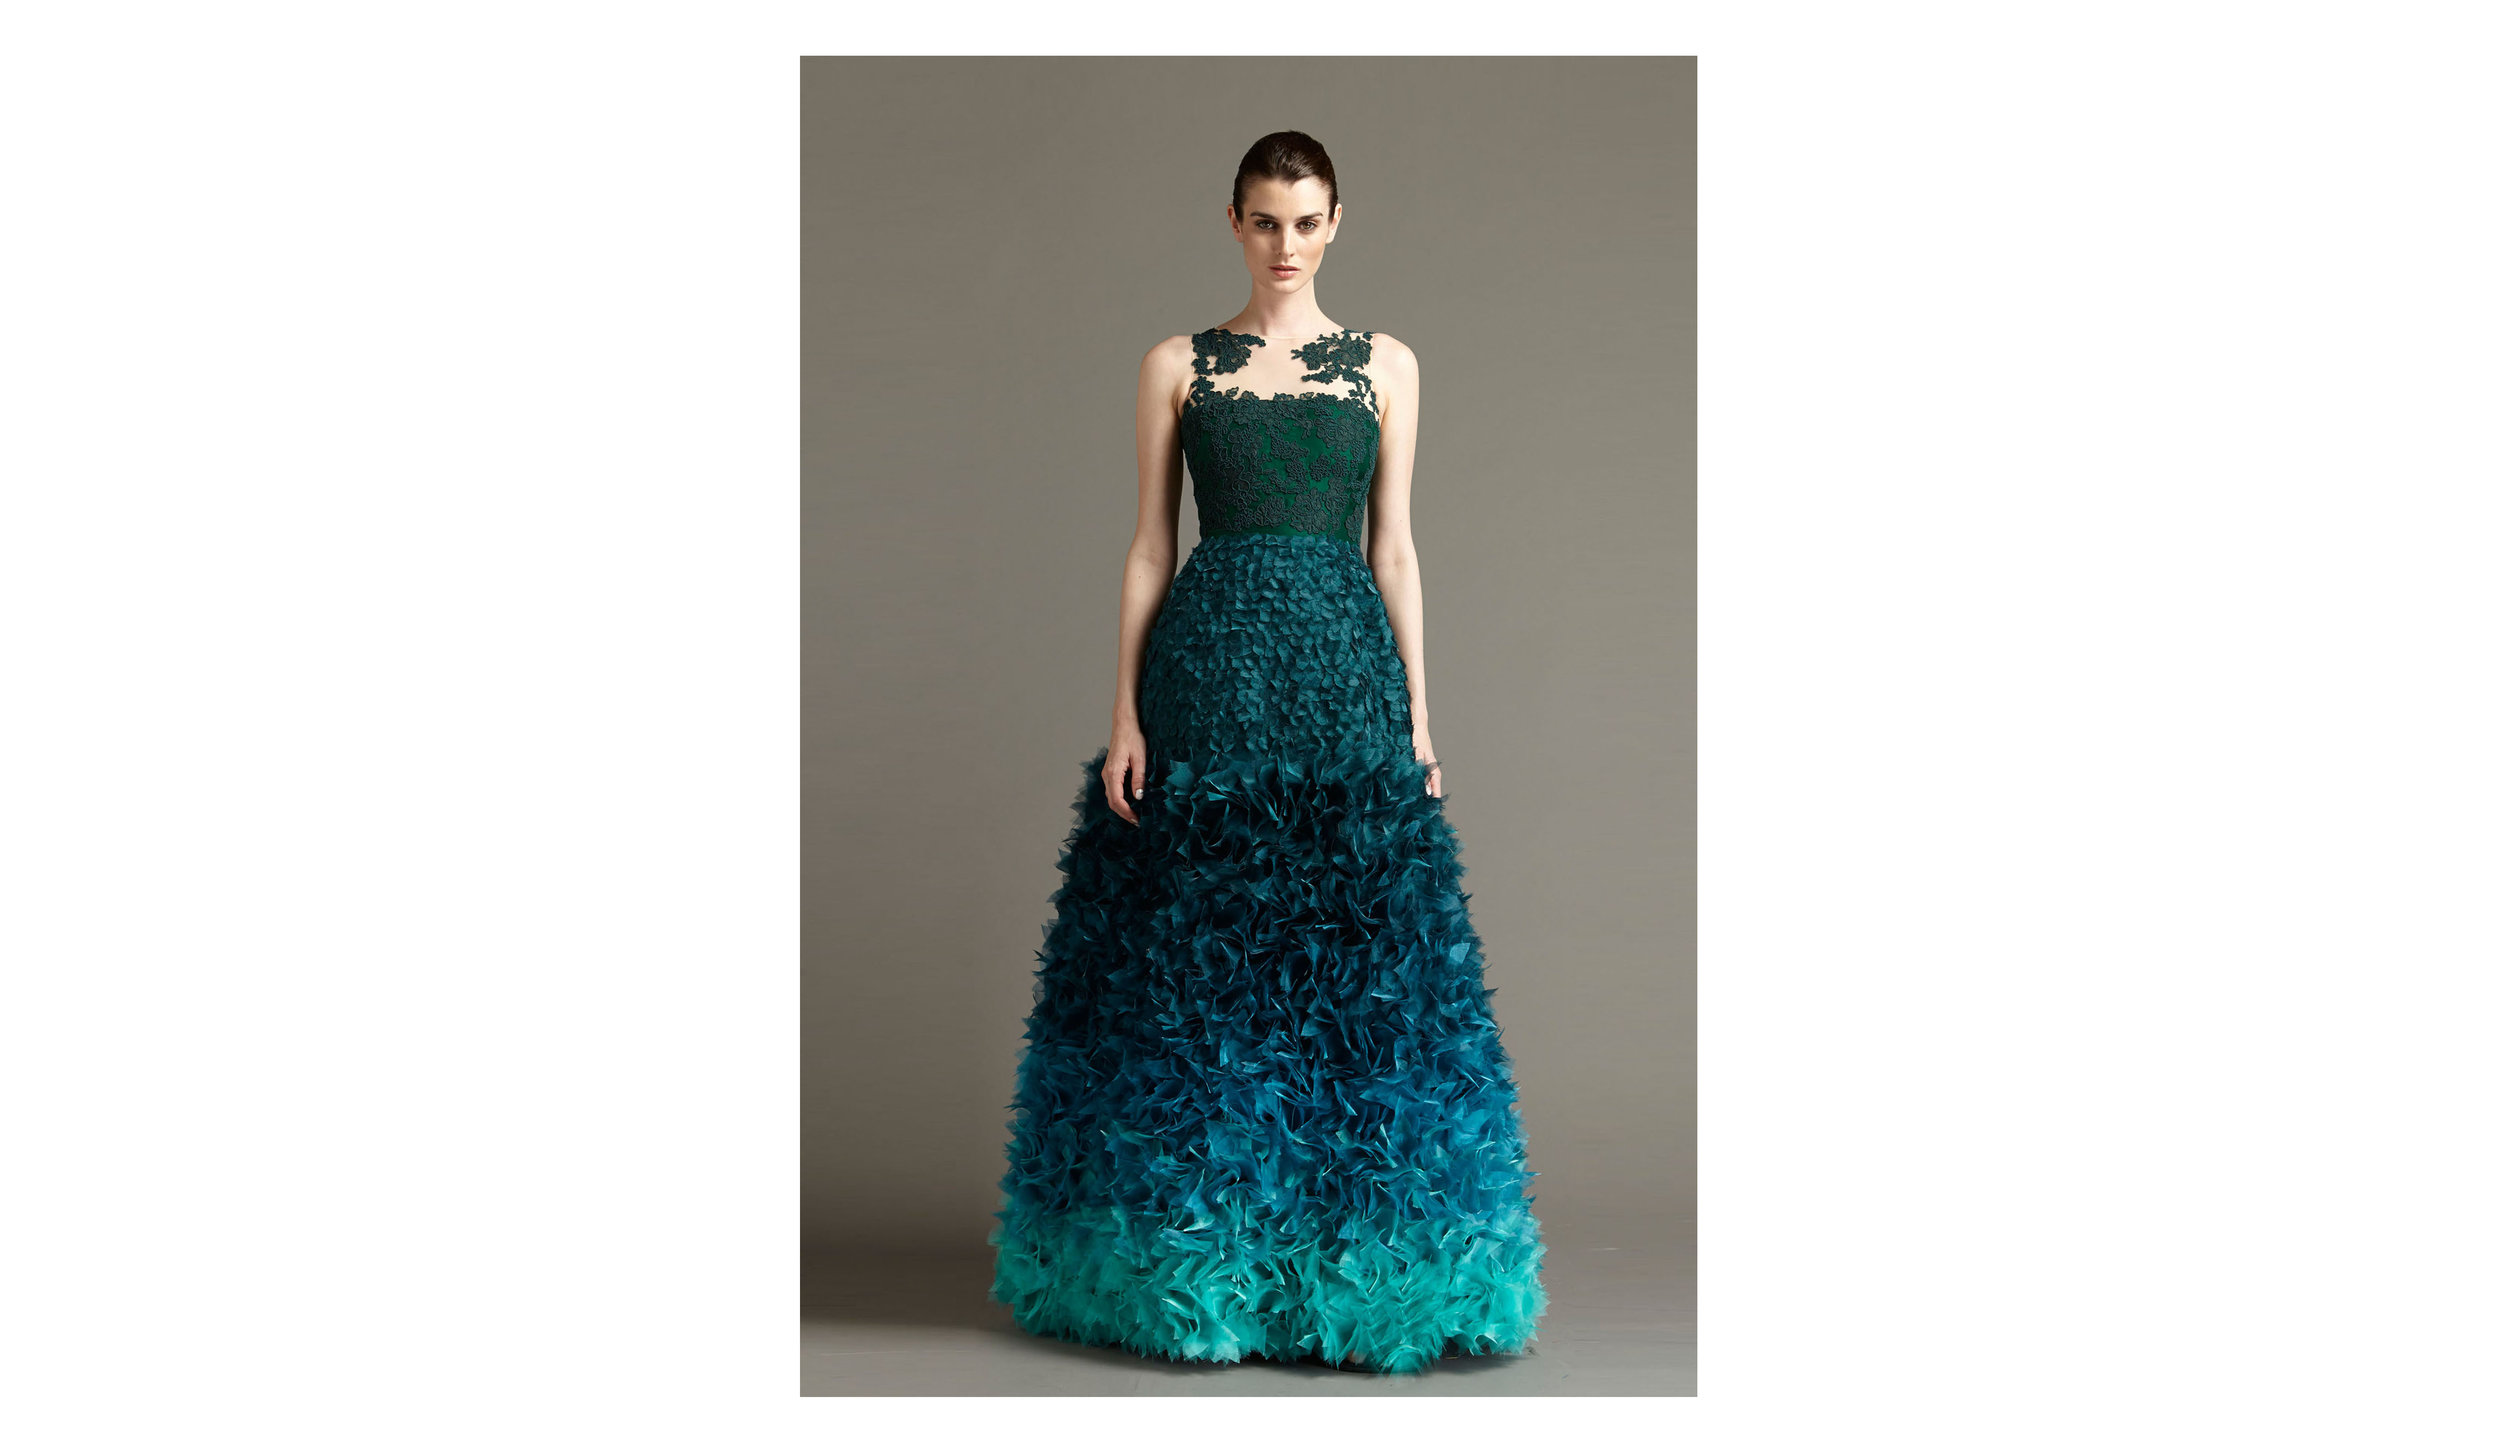 green ombre gown.jpg